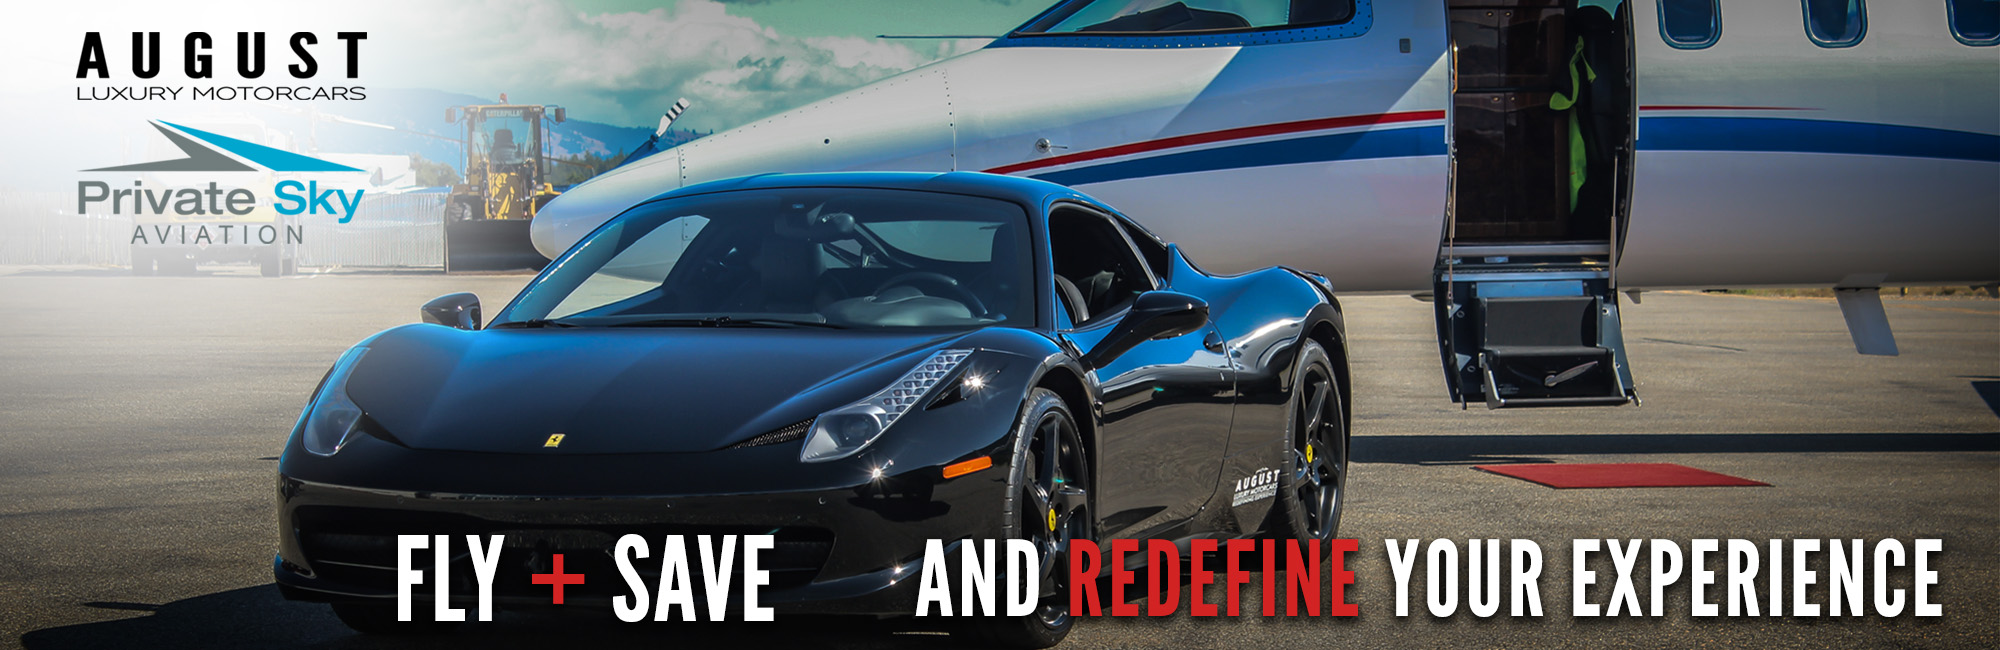 Fly and Save with August Motorcars